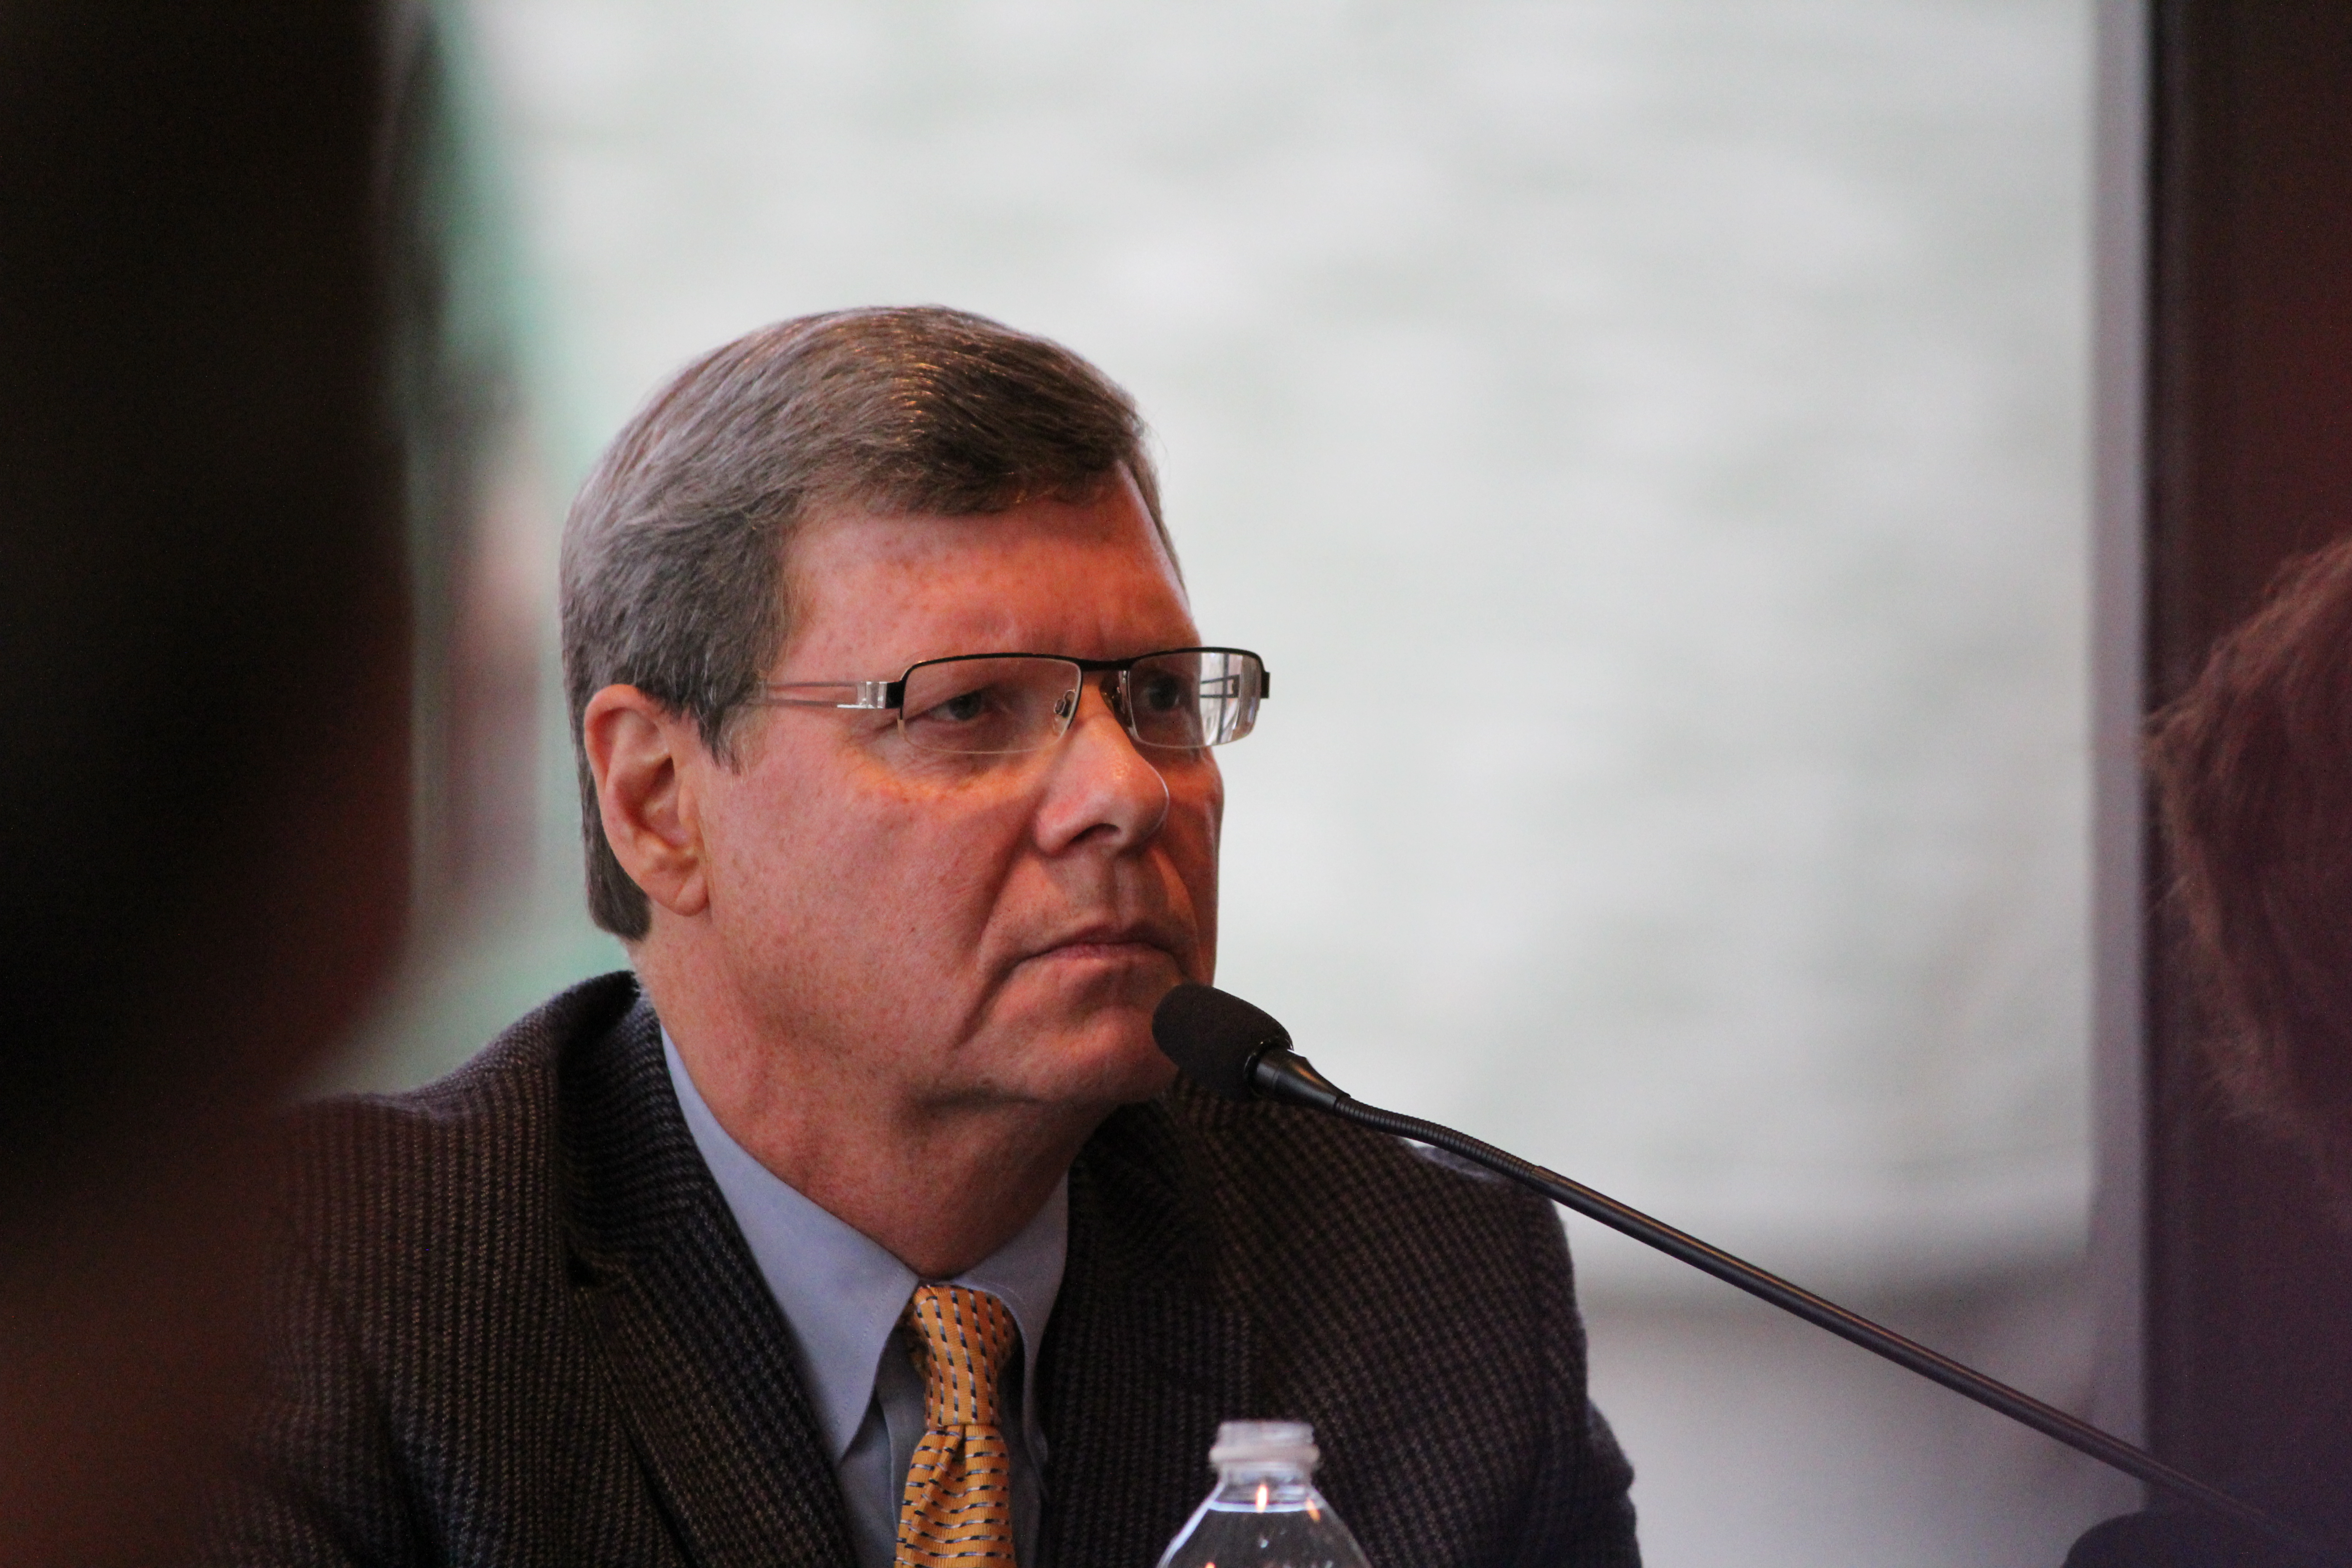 Charlie Sykes. Photo by Steven Potter.